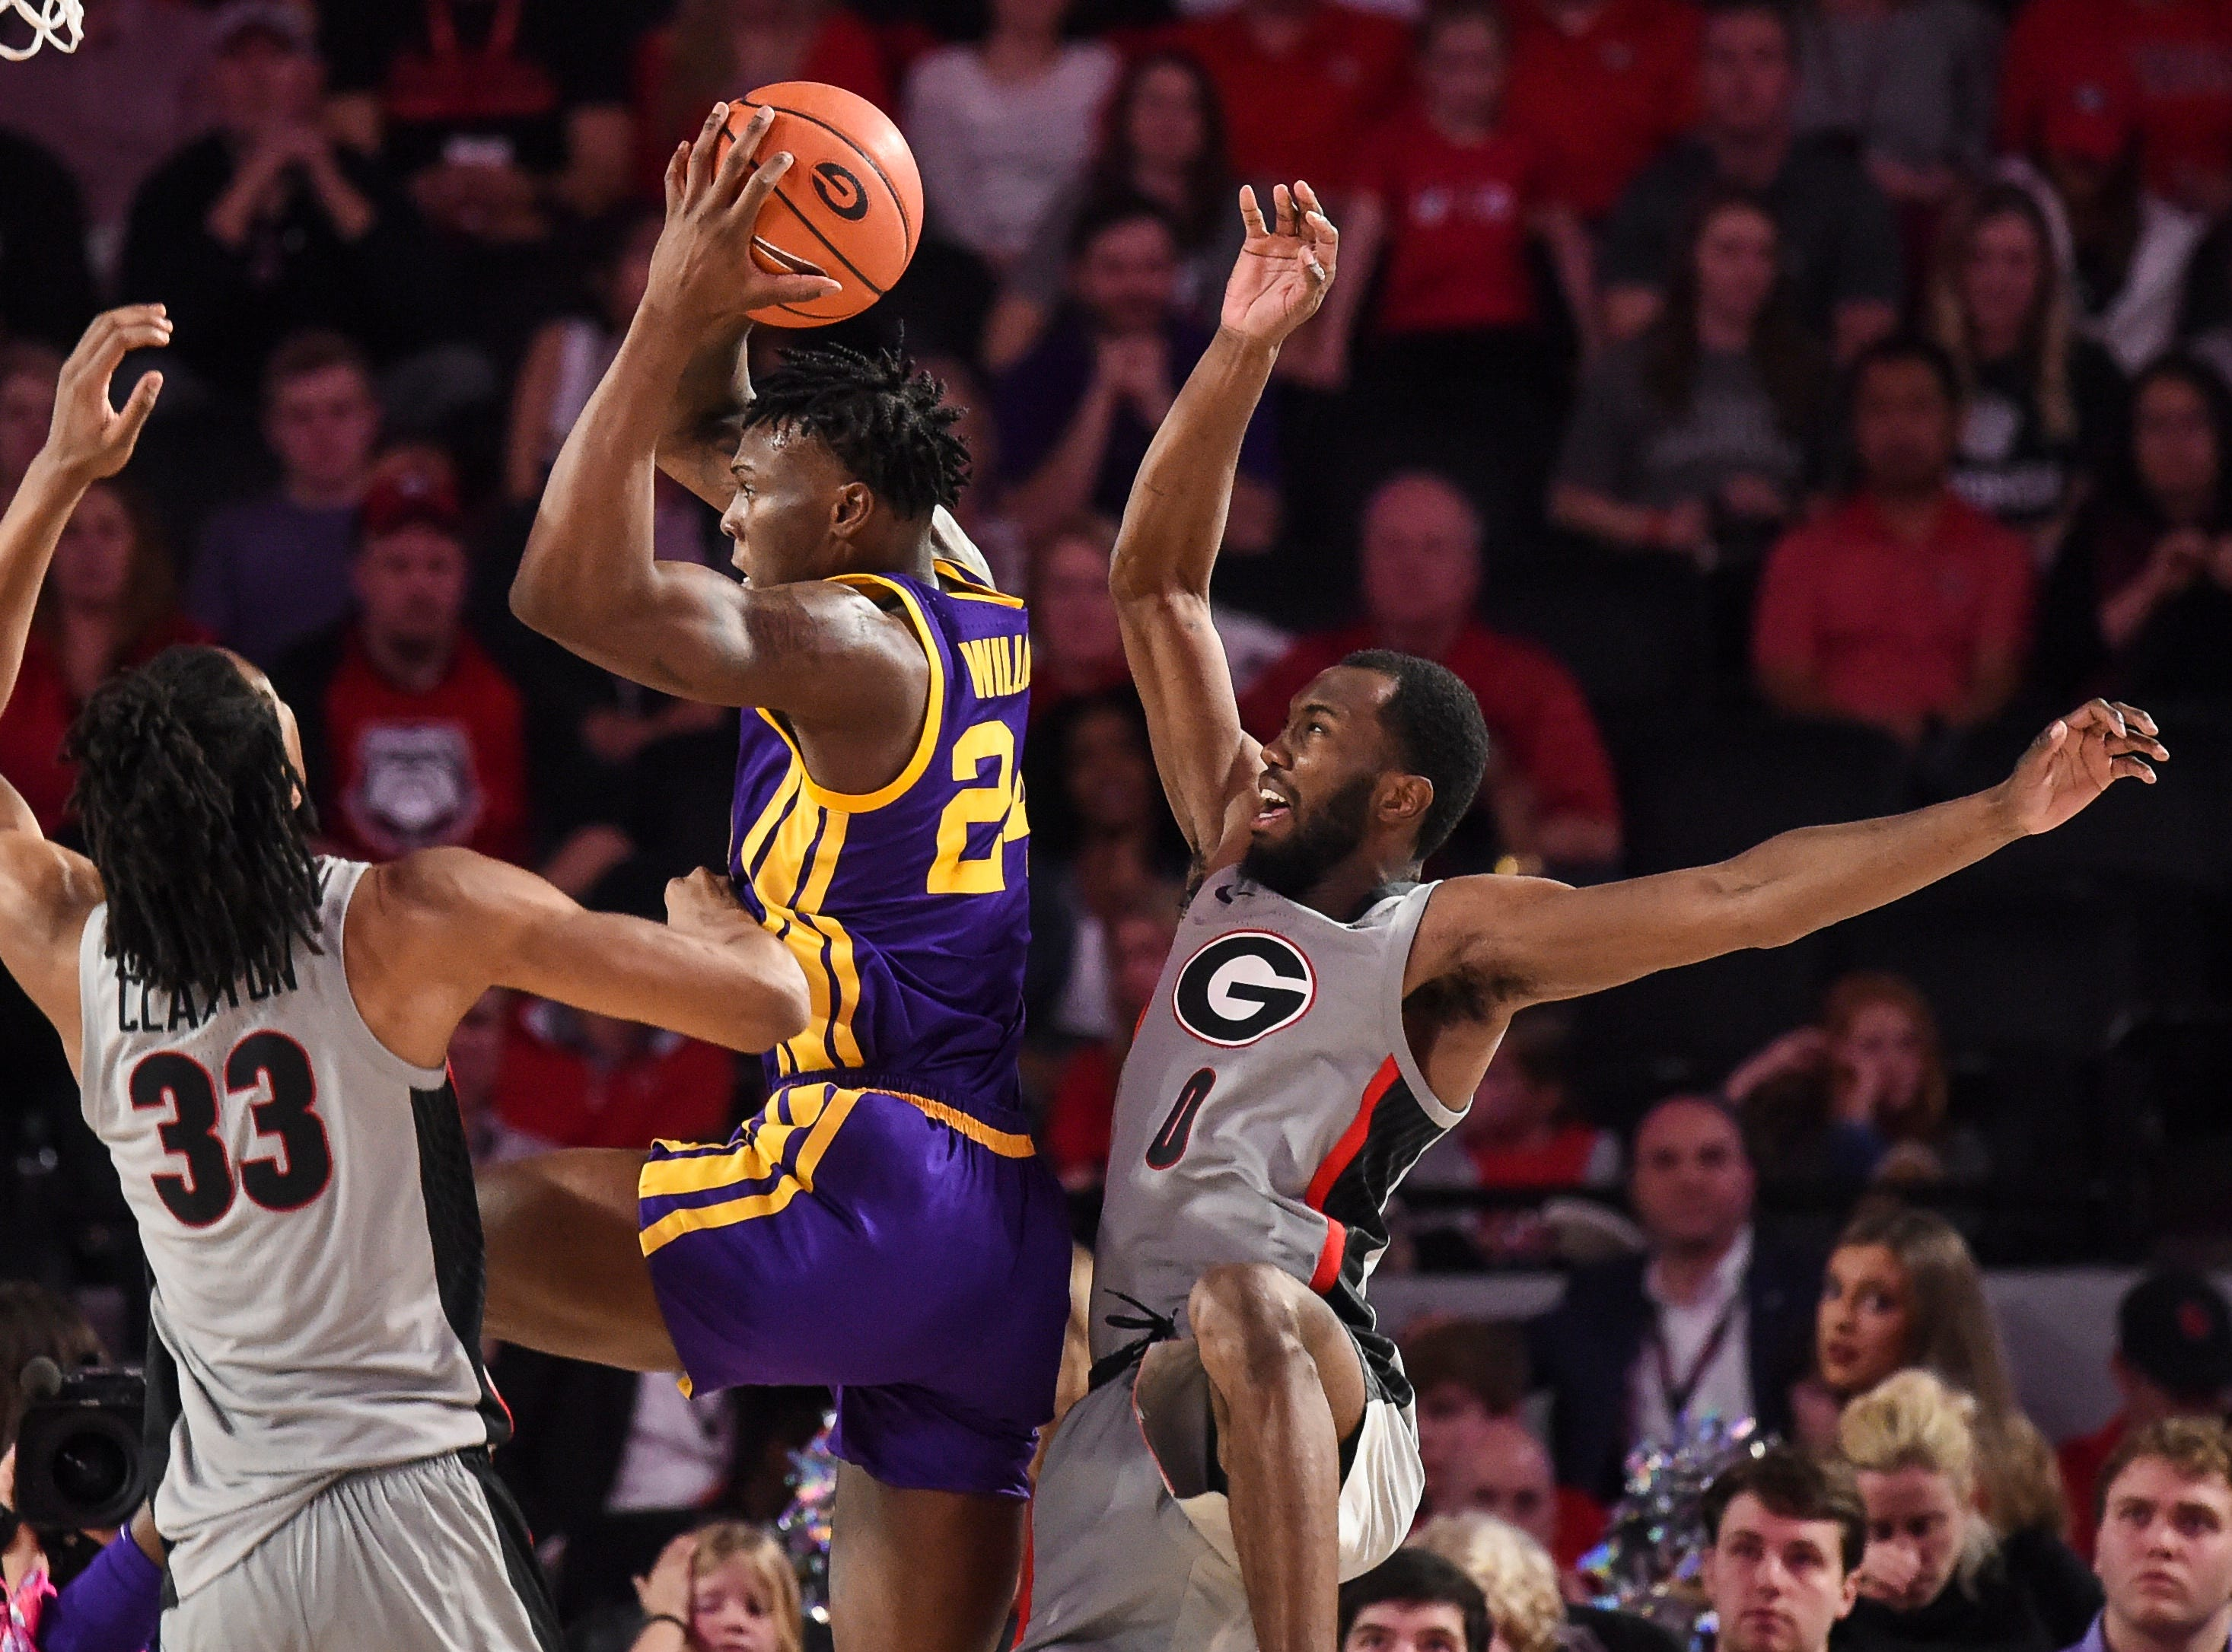 Feb 16, 2019; Athens, GA, USA; LSU Tigers forward Emmitt Williams (24) controls the ball between Georgia Bulldogs forward Nicolas Claxton (33) and guard William Jackson II (0) during the second half at Stegeman Coliseum. Mandatory Credit: Dale Zanine-USA TODAY Sports